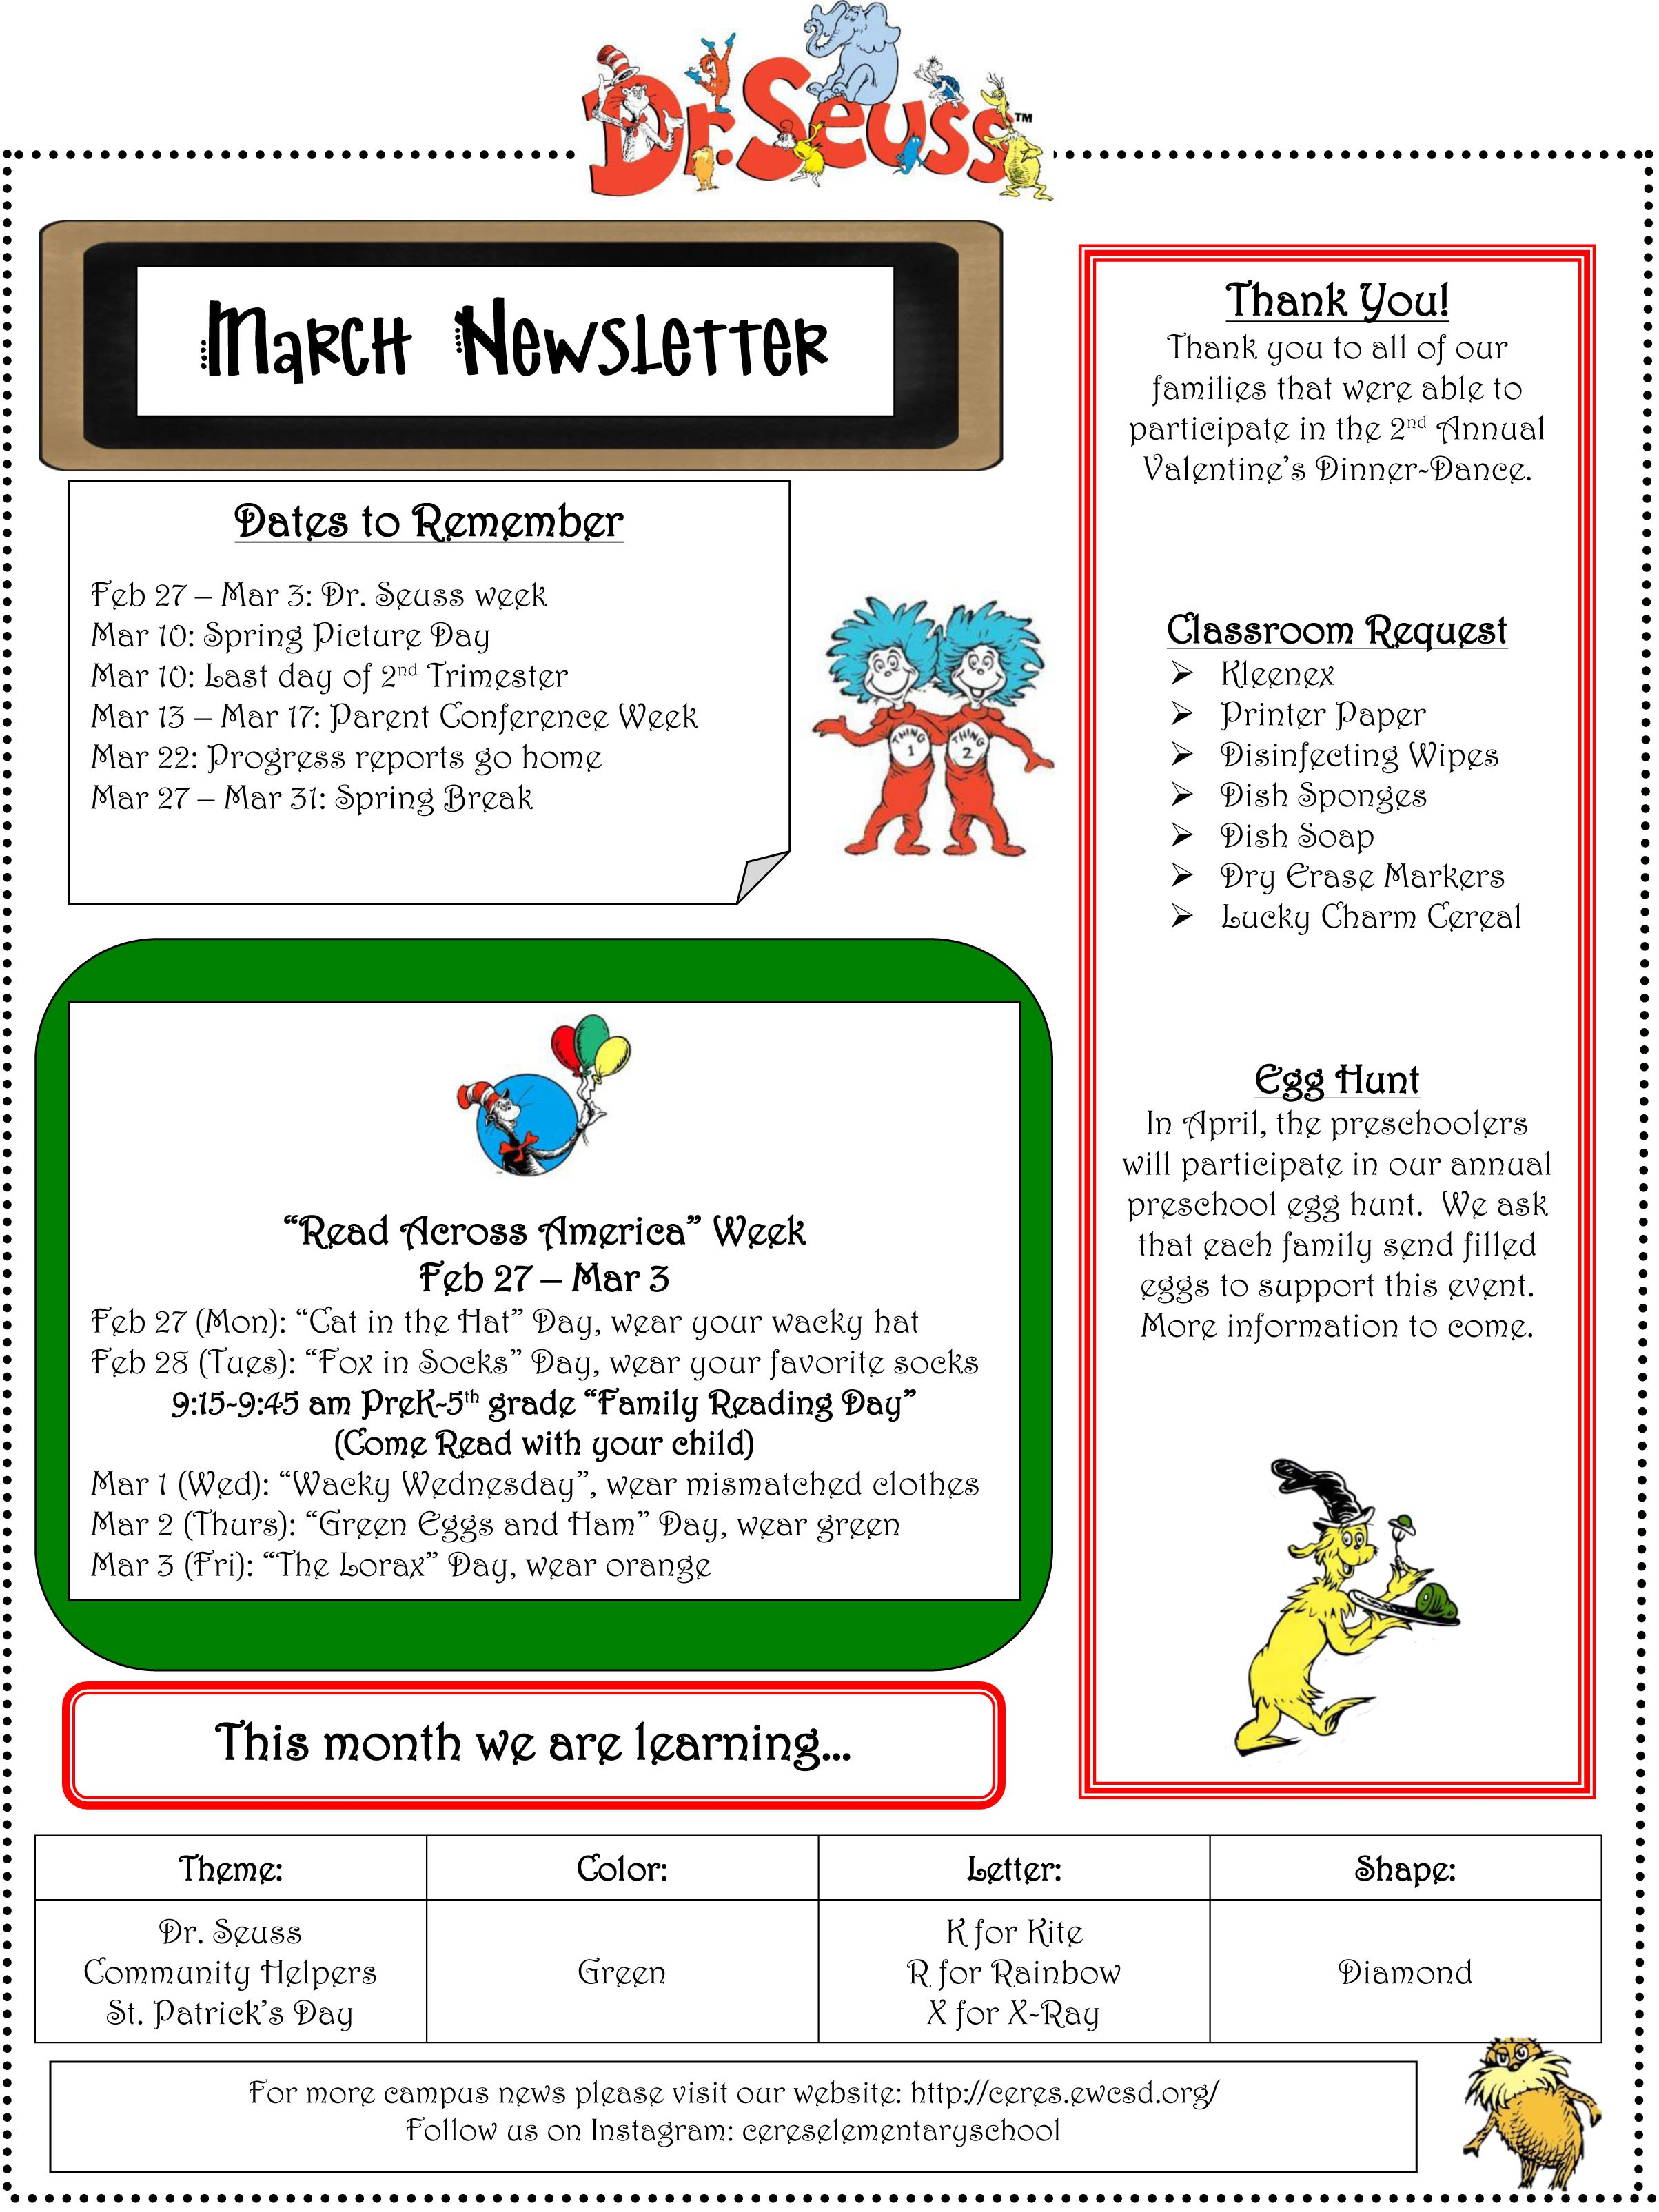 March newsletter for Ceres preschool.